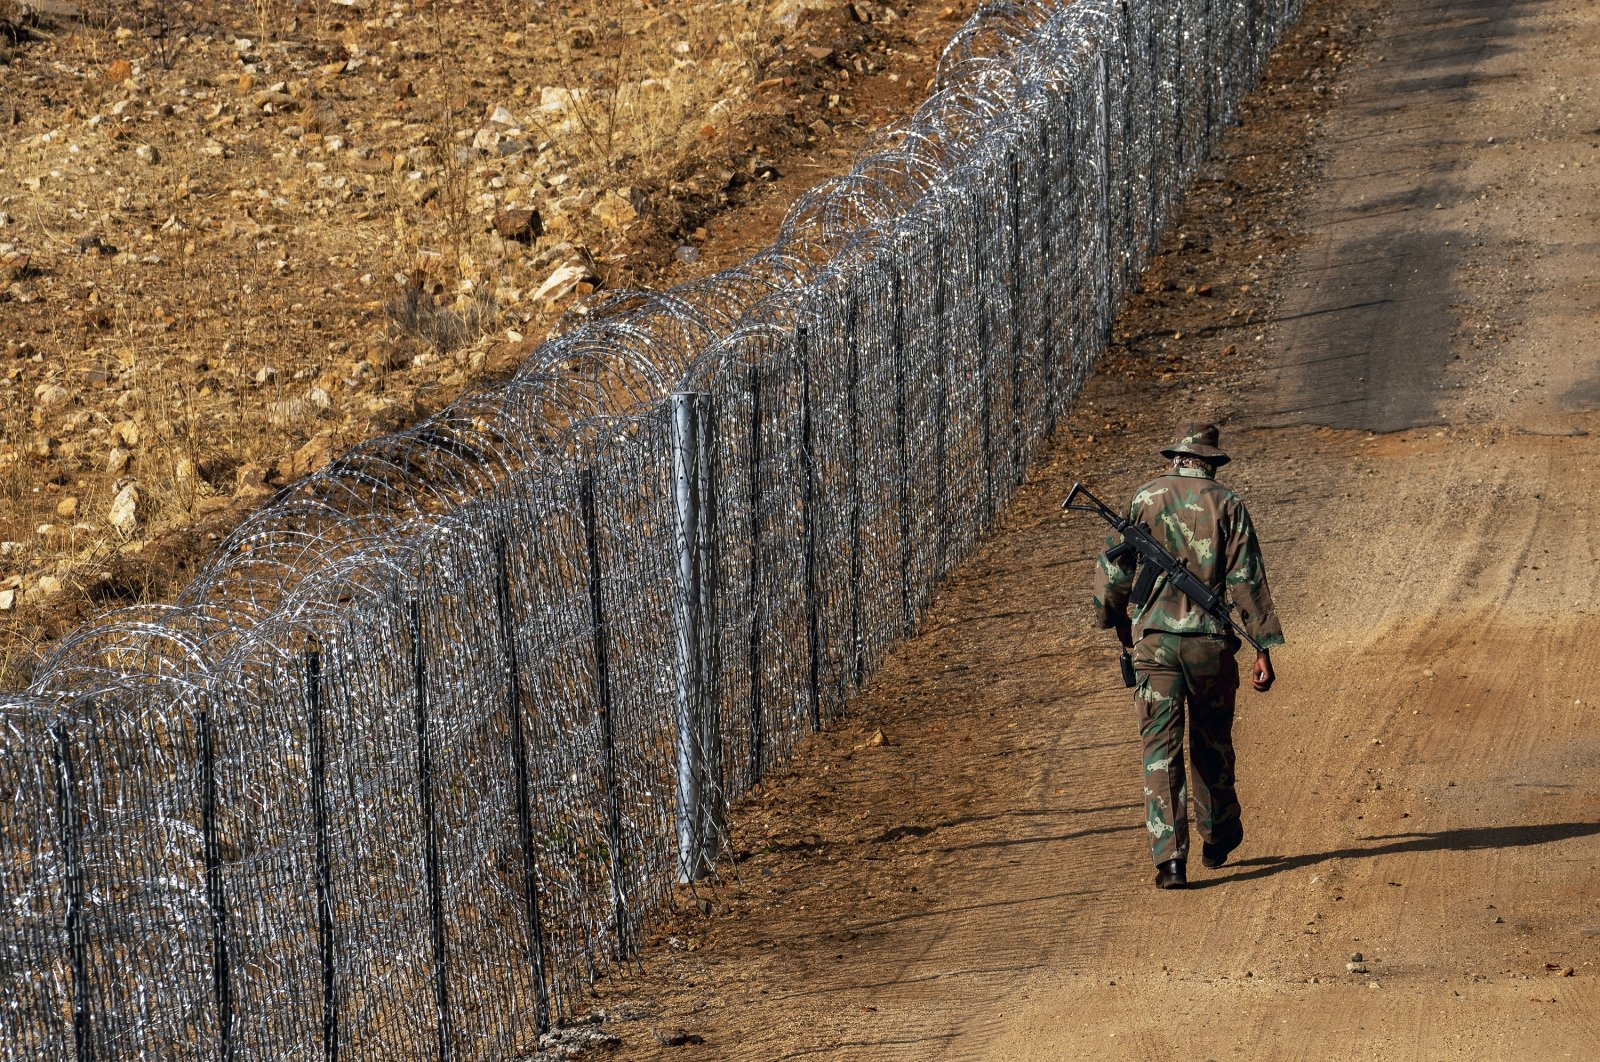 South Africa National Defense Forces soldier patrols along the newly built fence on the South Africa-Zimbabwe border near the border town of Musina, South Africa, June 30, 2020. (AP Photo)